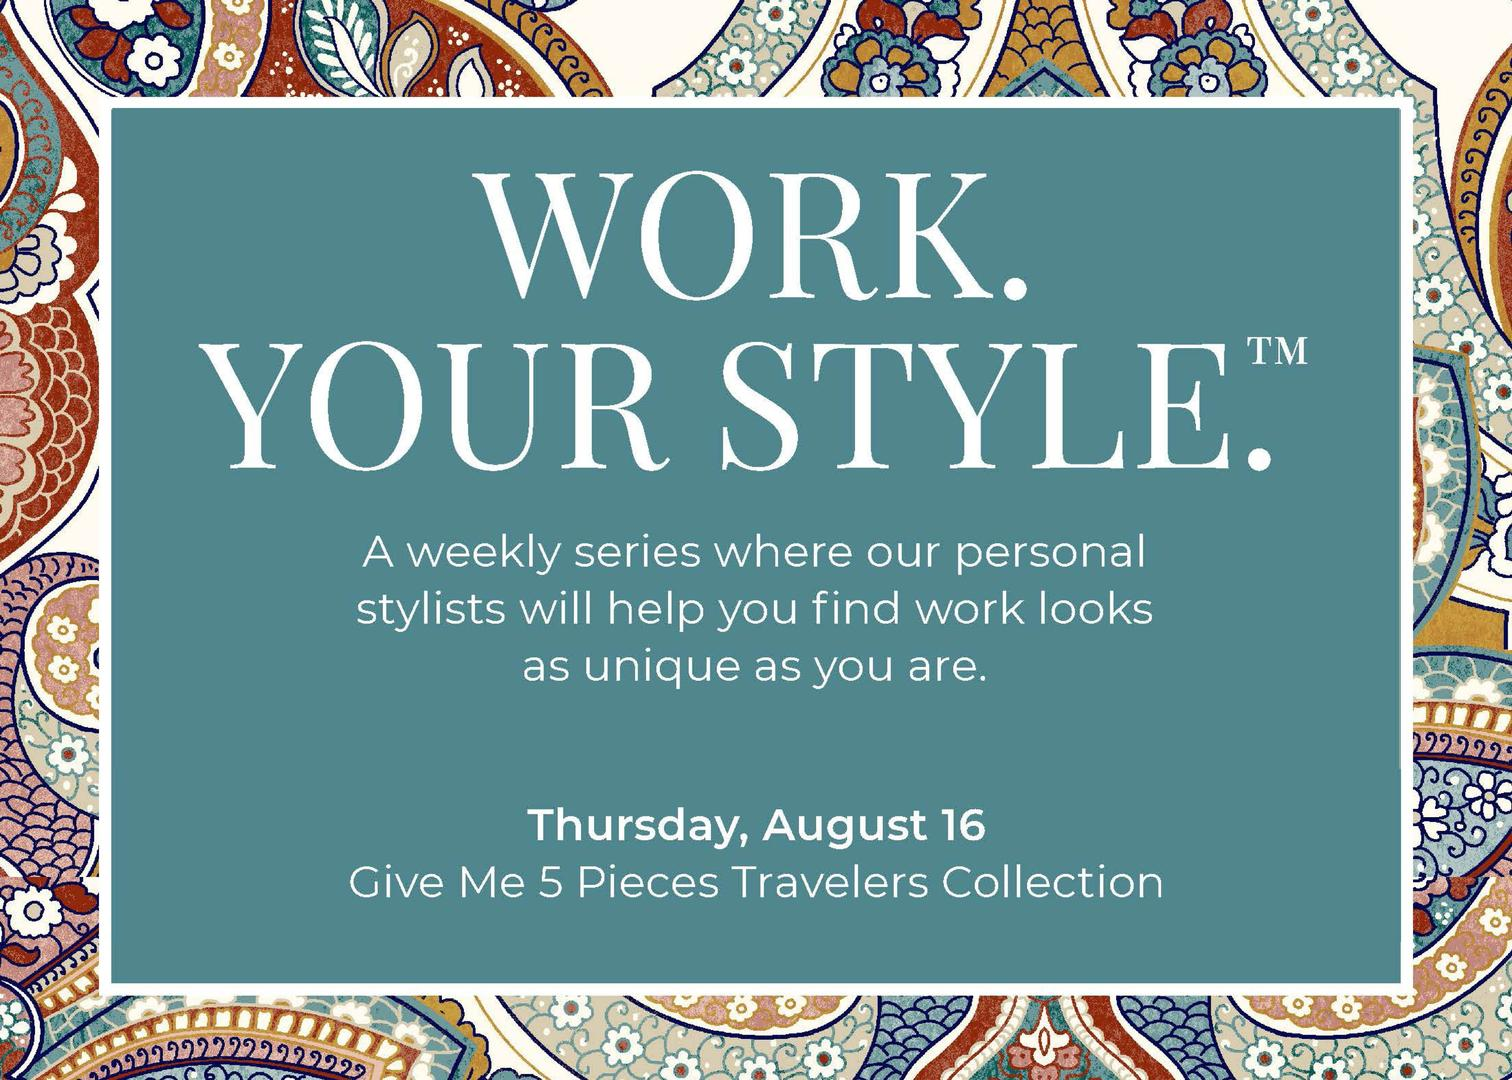 Westfield Countryside, Work You Style- Give Me 5 Pieces Travelers Collection  Event Image: 27001 US Hwy 19 North, Clearwater, FL 33761, US